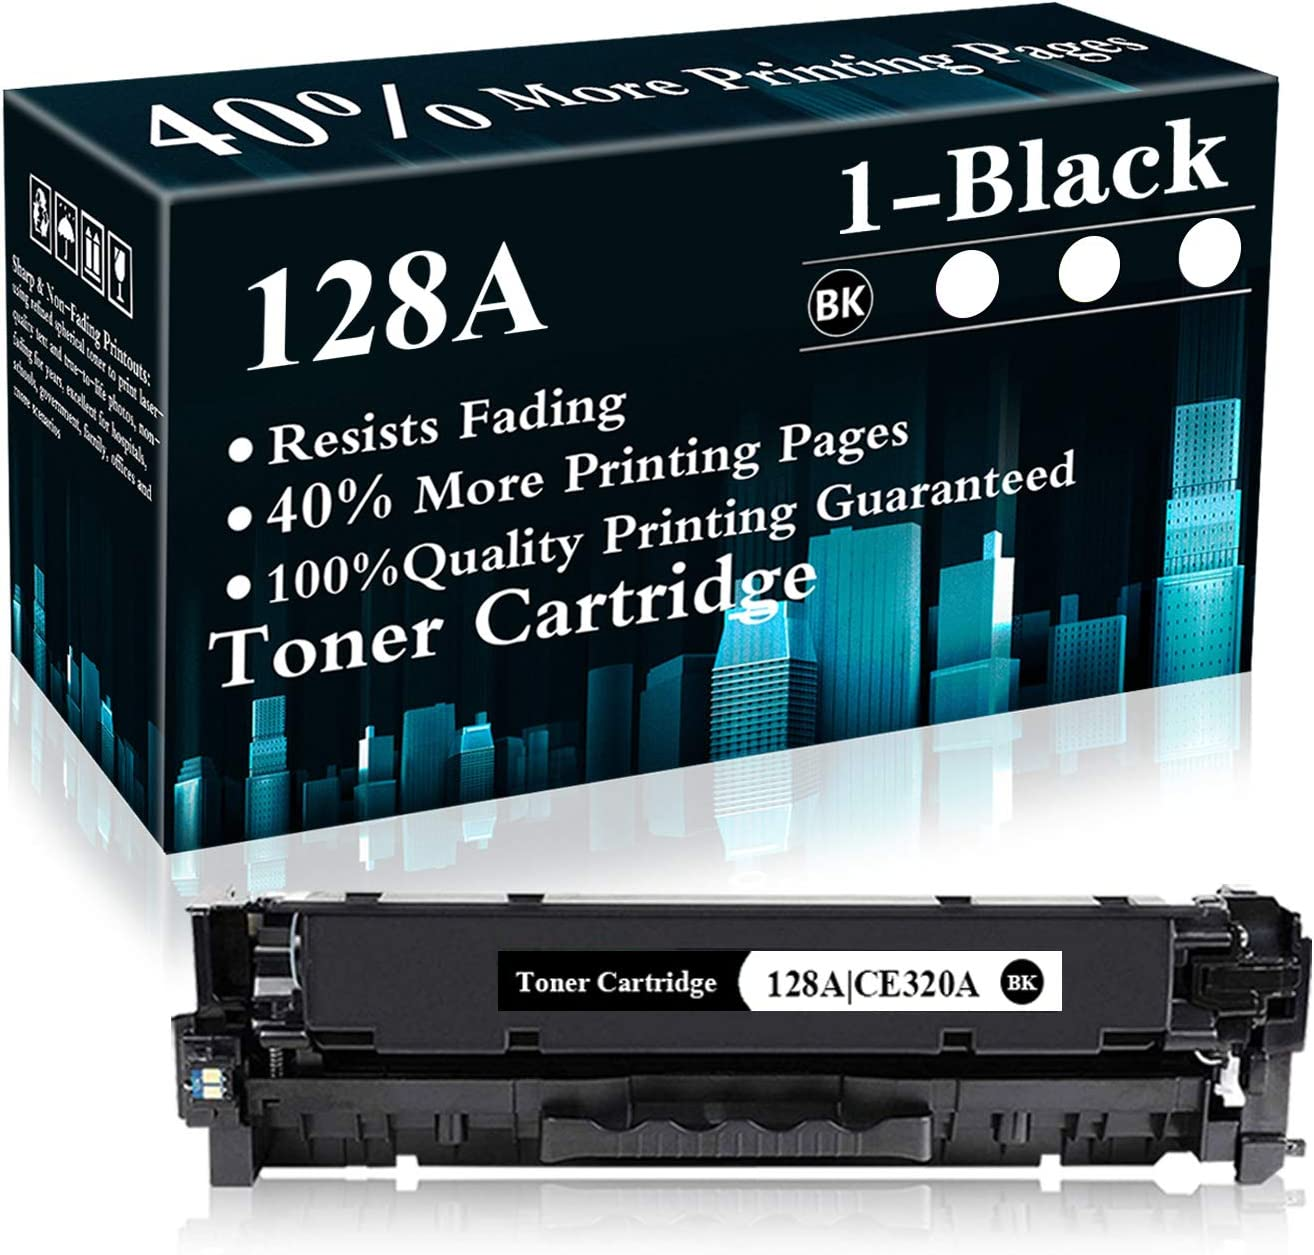 1 Pack 128A | CE320A Remanufactured Toner Cartridge Replacement for HP Color Laserjet Pro CP1525n,CP1525nw,CM1415fn MFP,CM1415fnw MFP Printer,Sold by TopInk